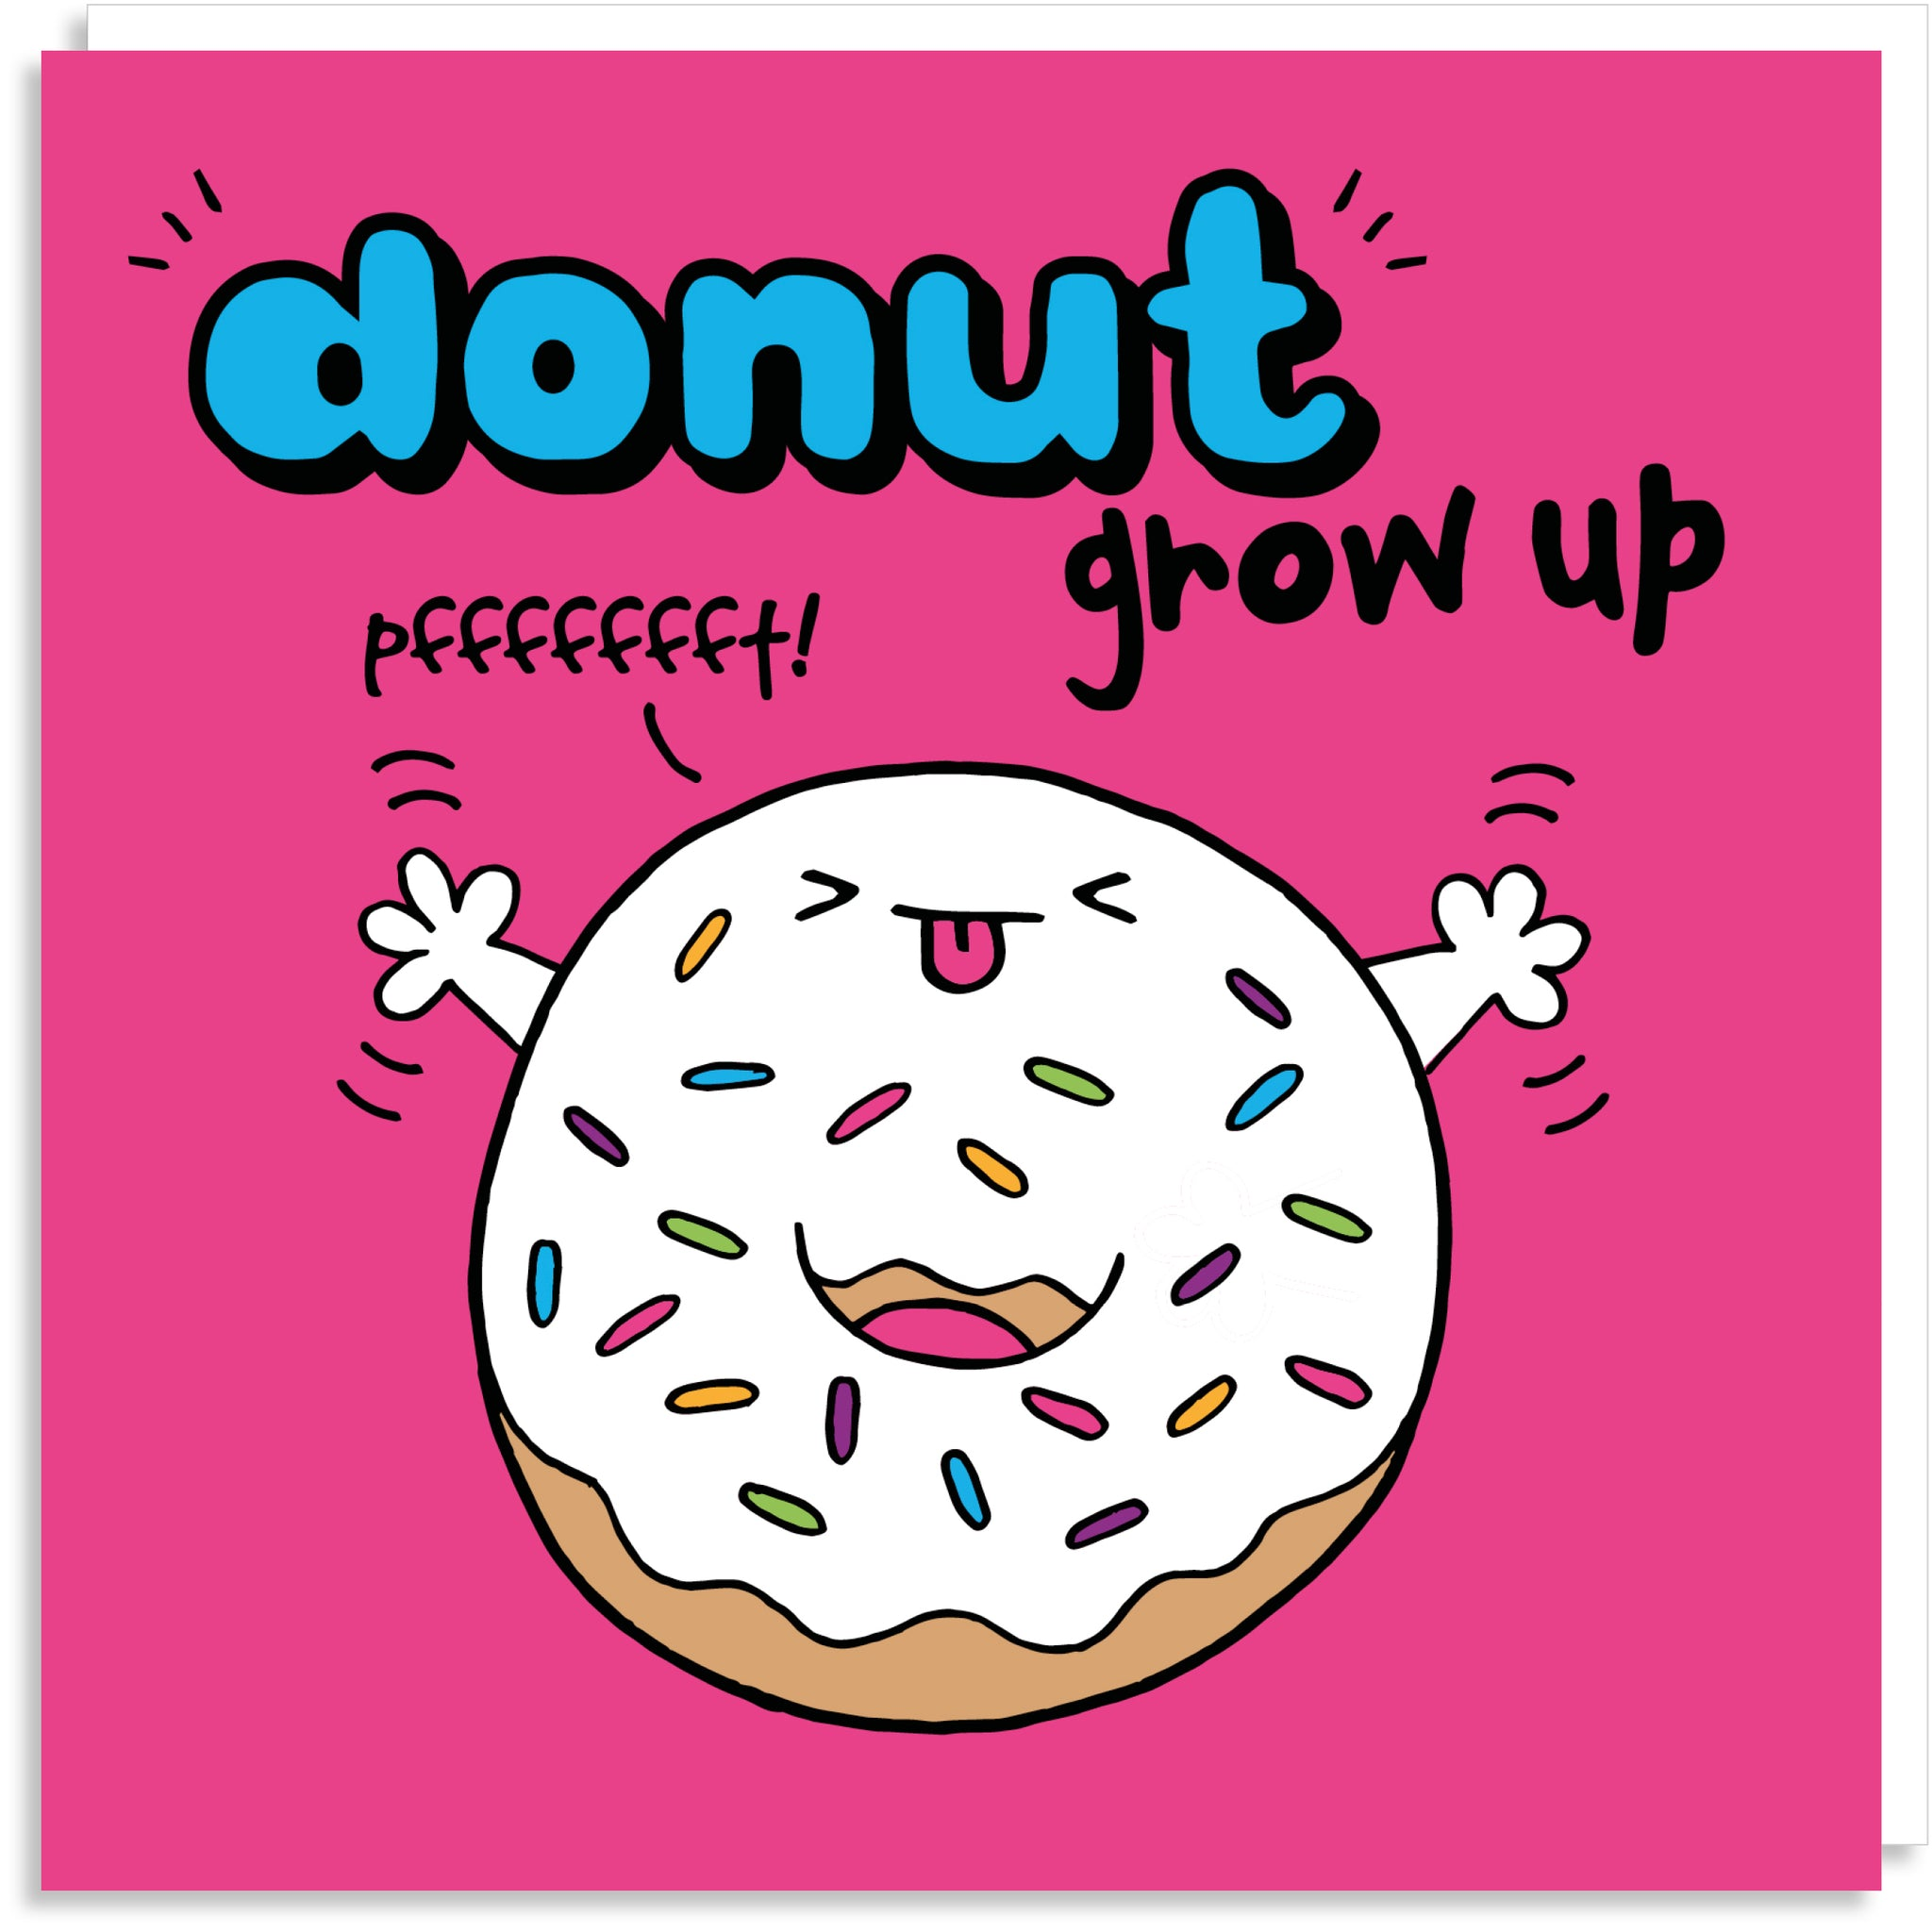 Donut grow up greeting card